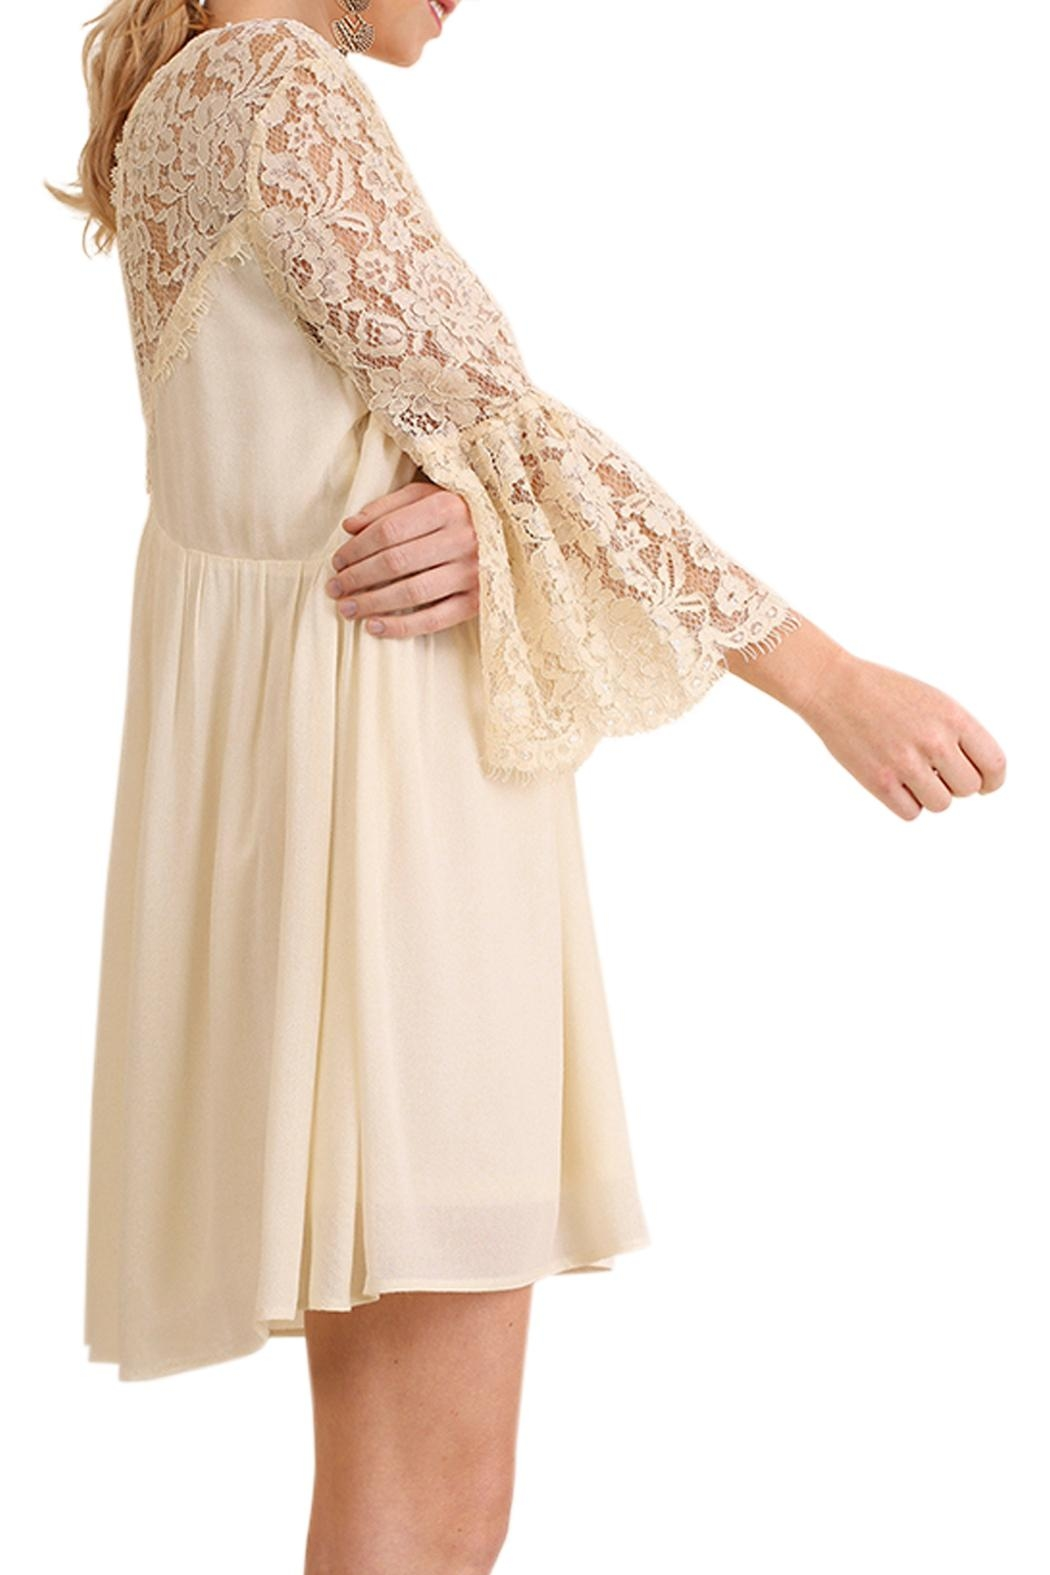 Umgee USA Floral Lace Dress - Front Full Image